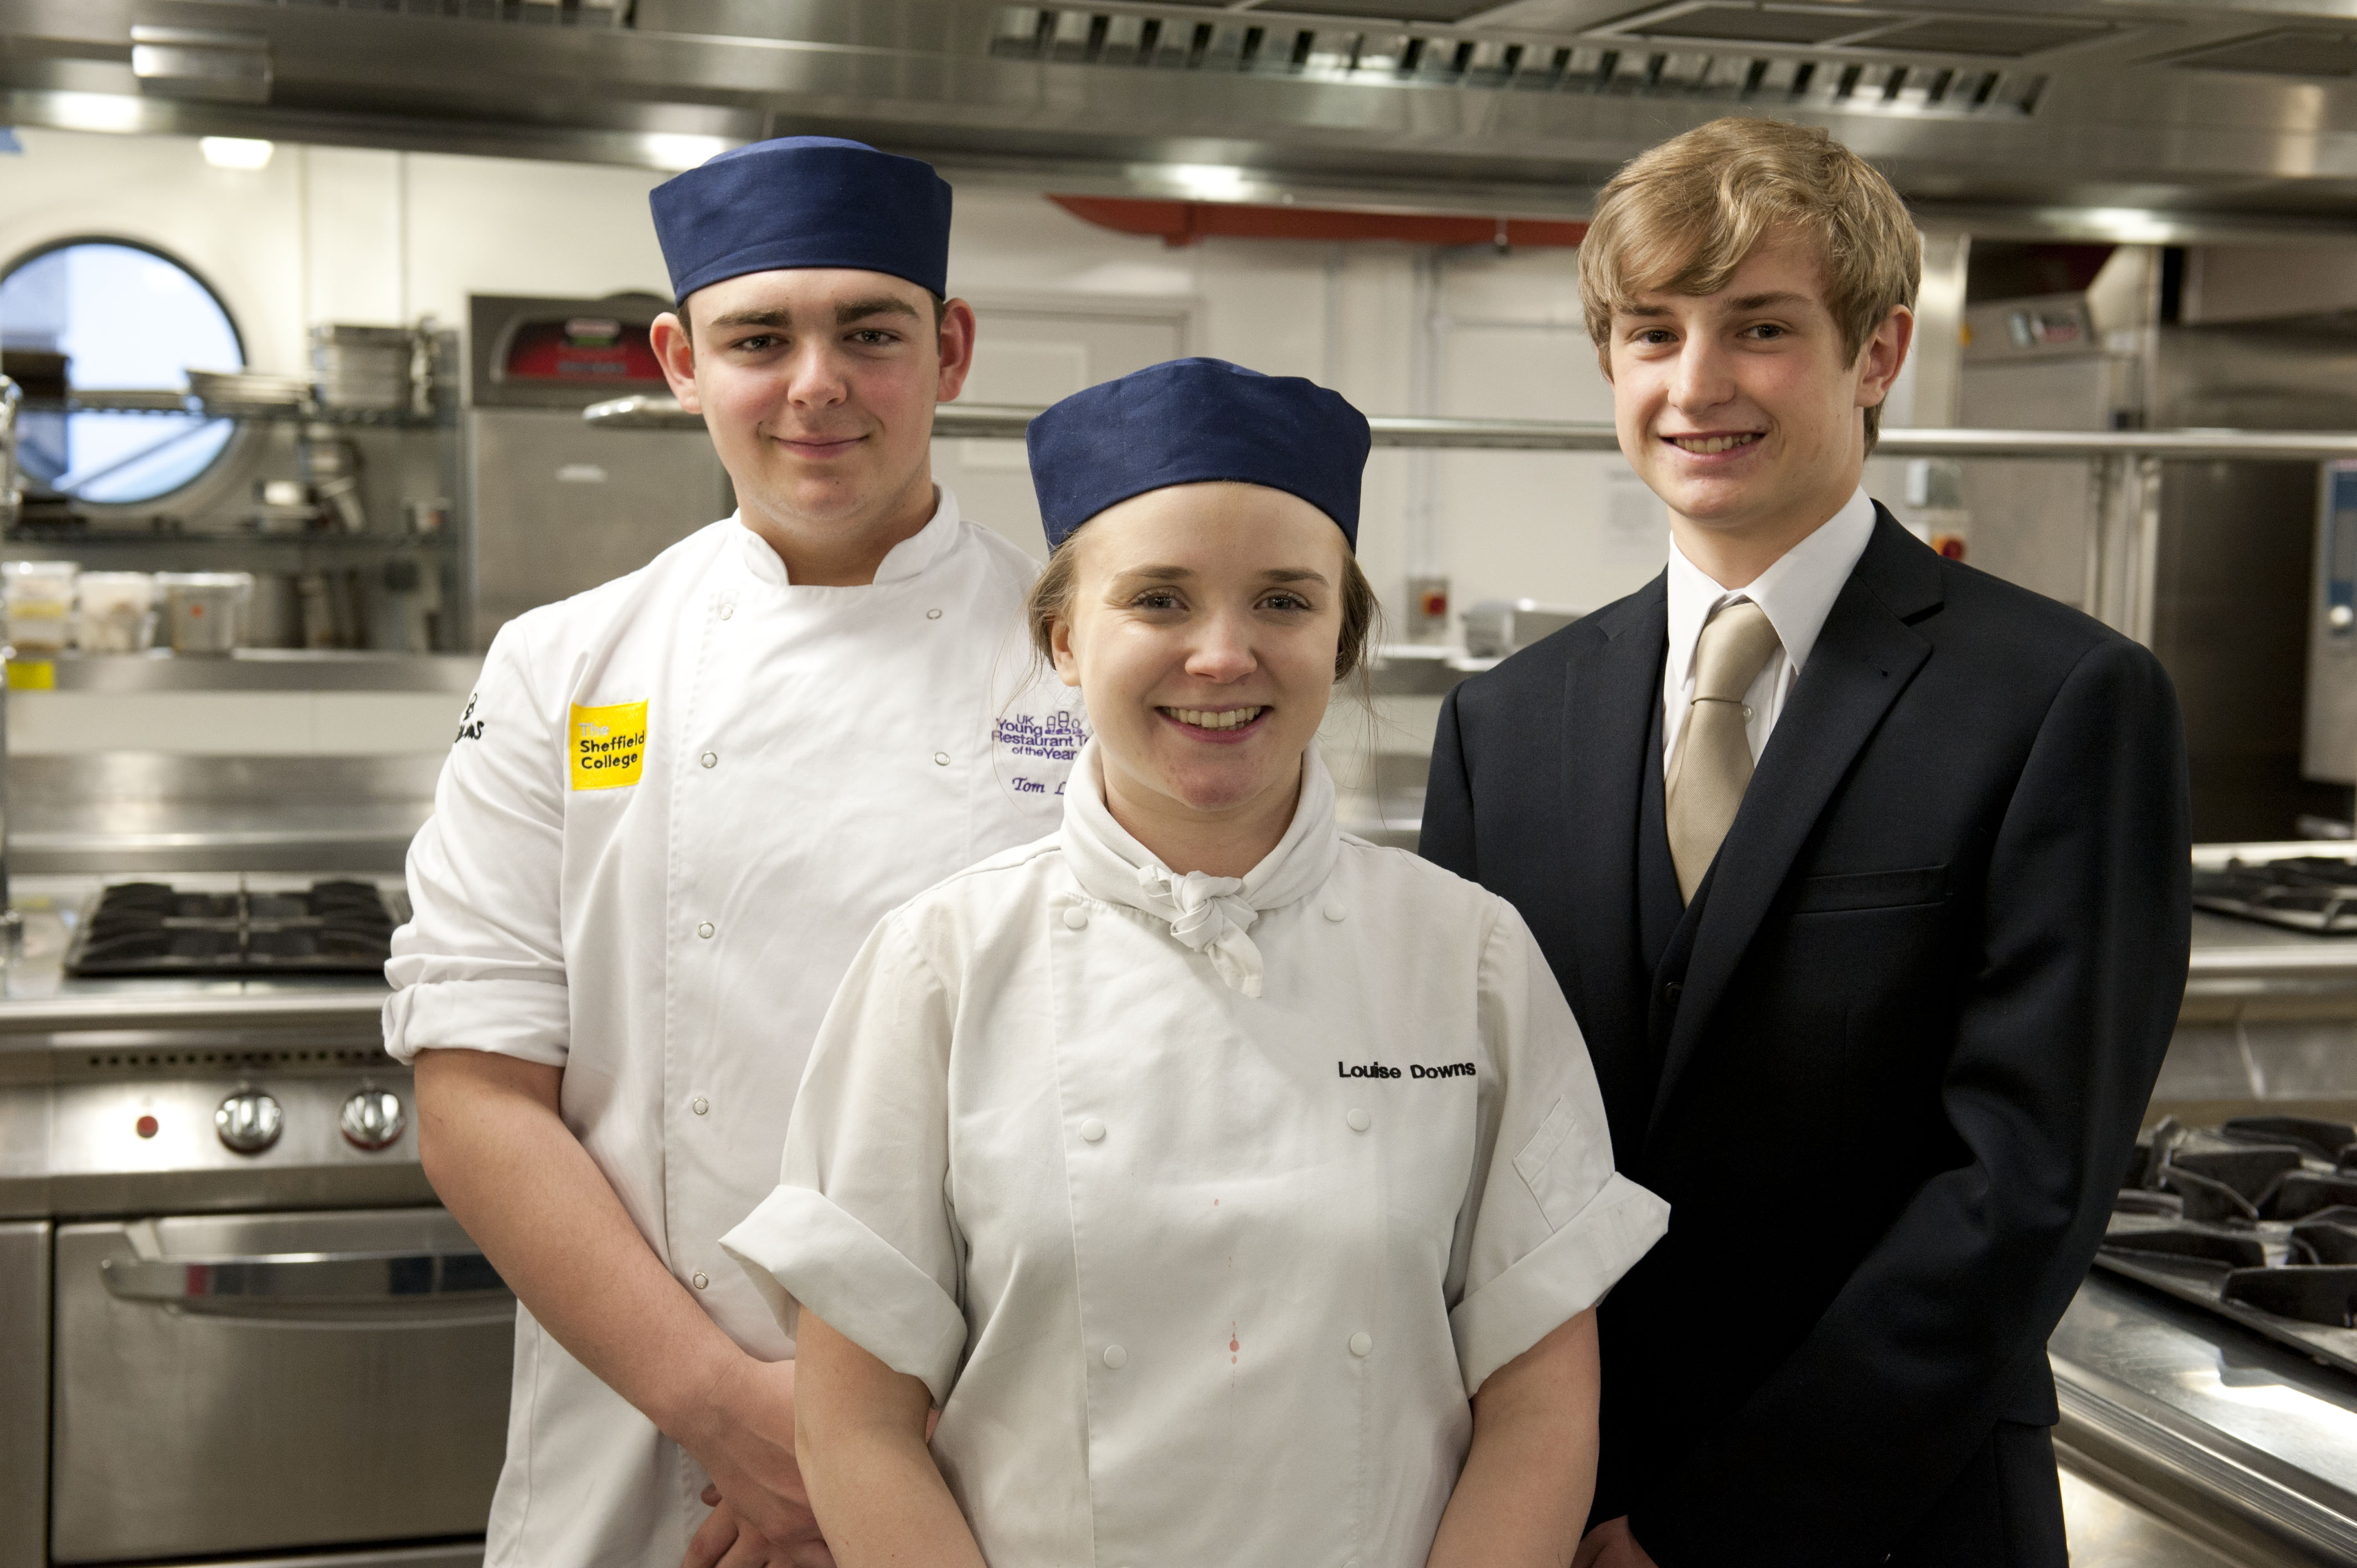 Sheffield College Wins Place In UK Young Restaurant Team of the Year Final